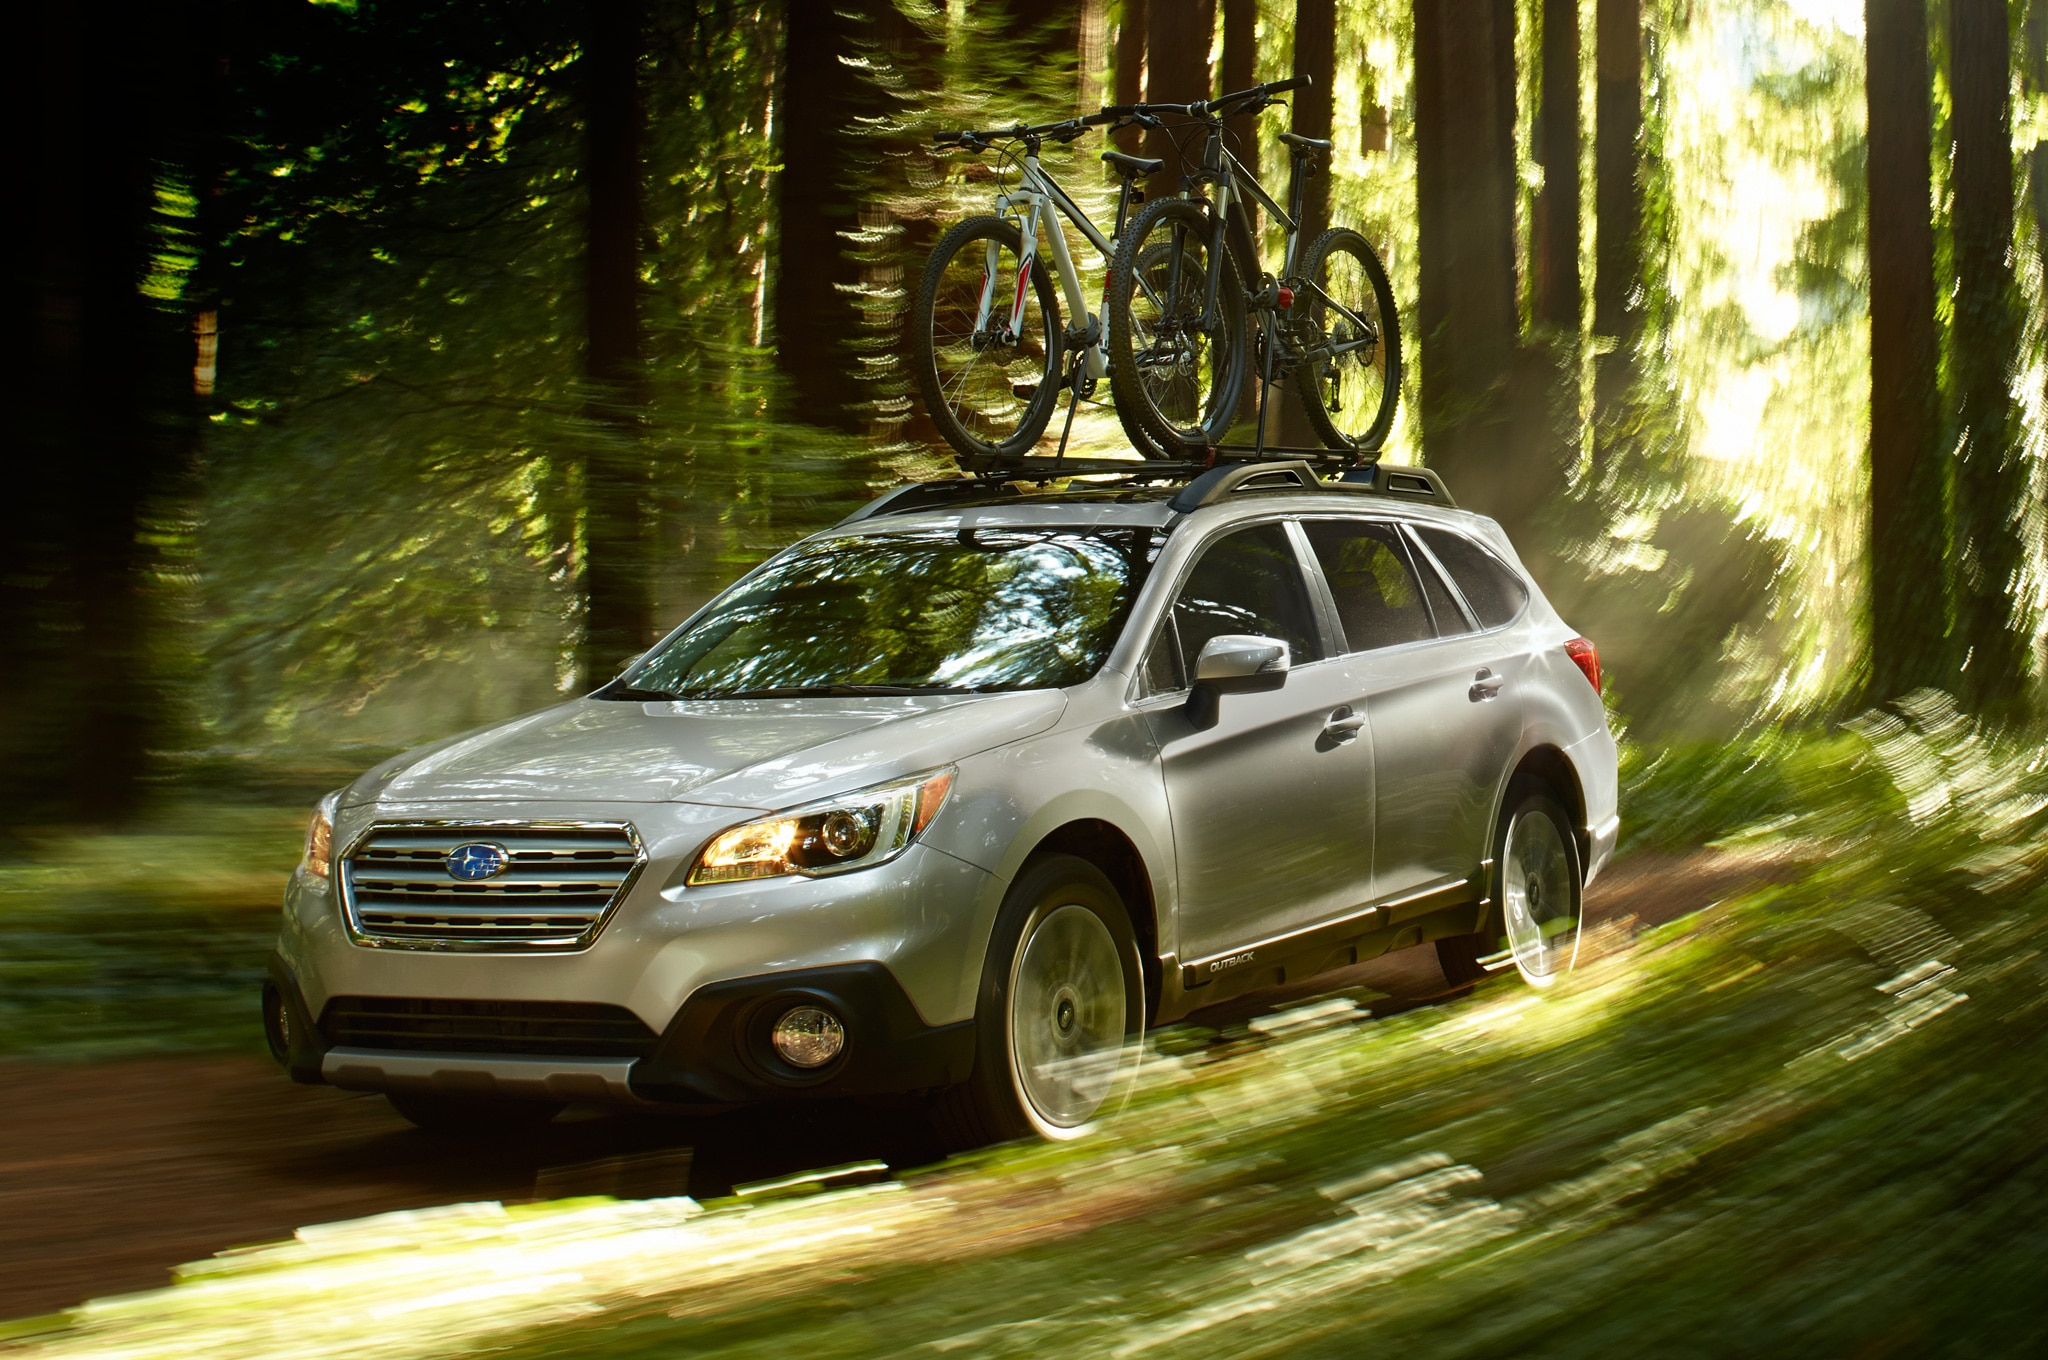 2015 Subaru Outback Unveiled in New York - Automobile Magazine